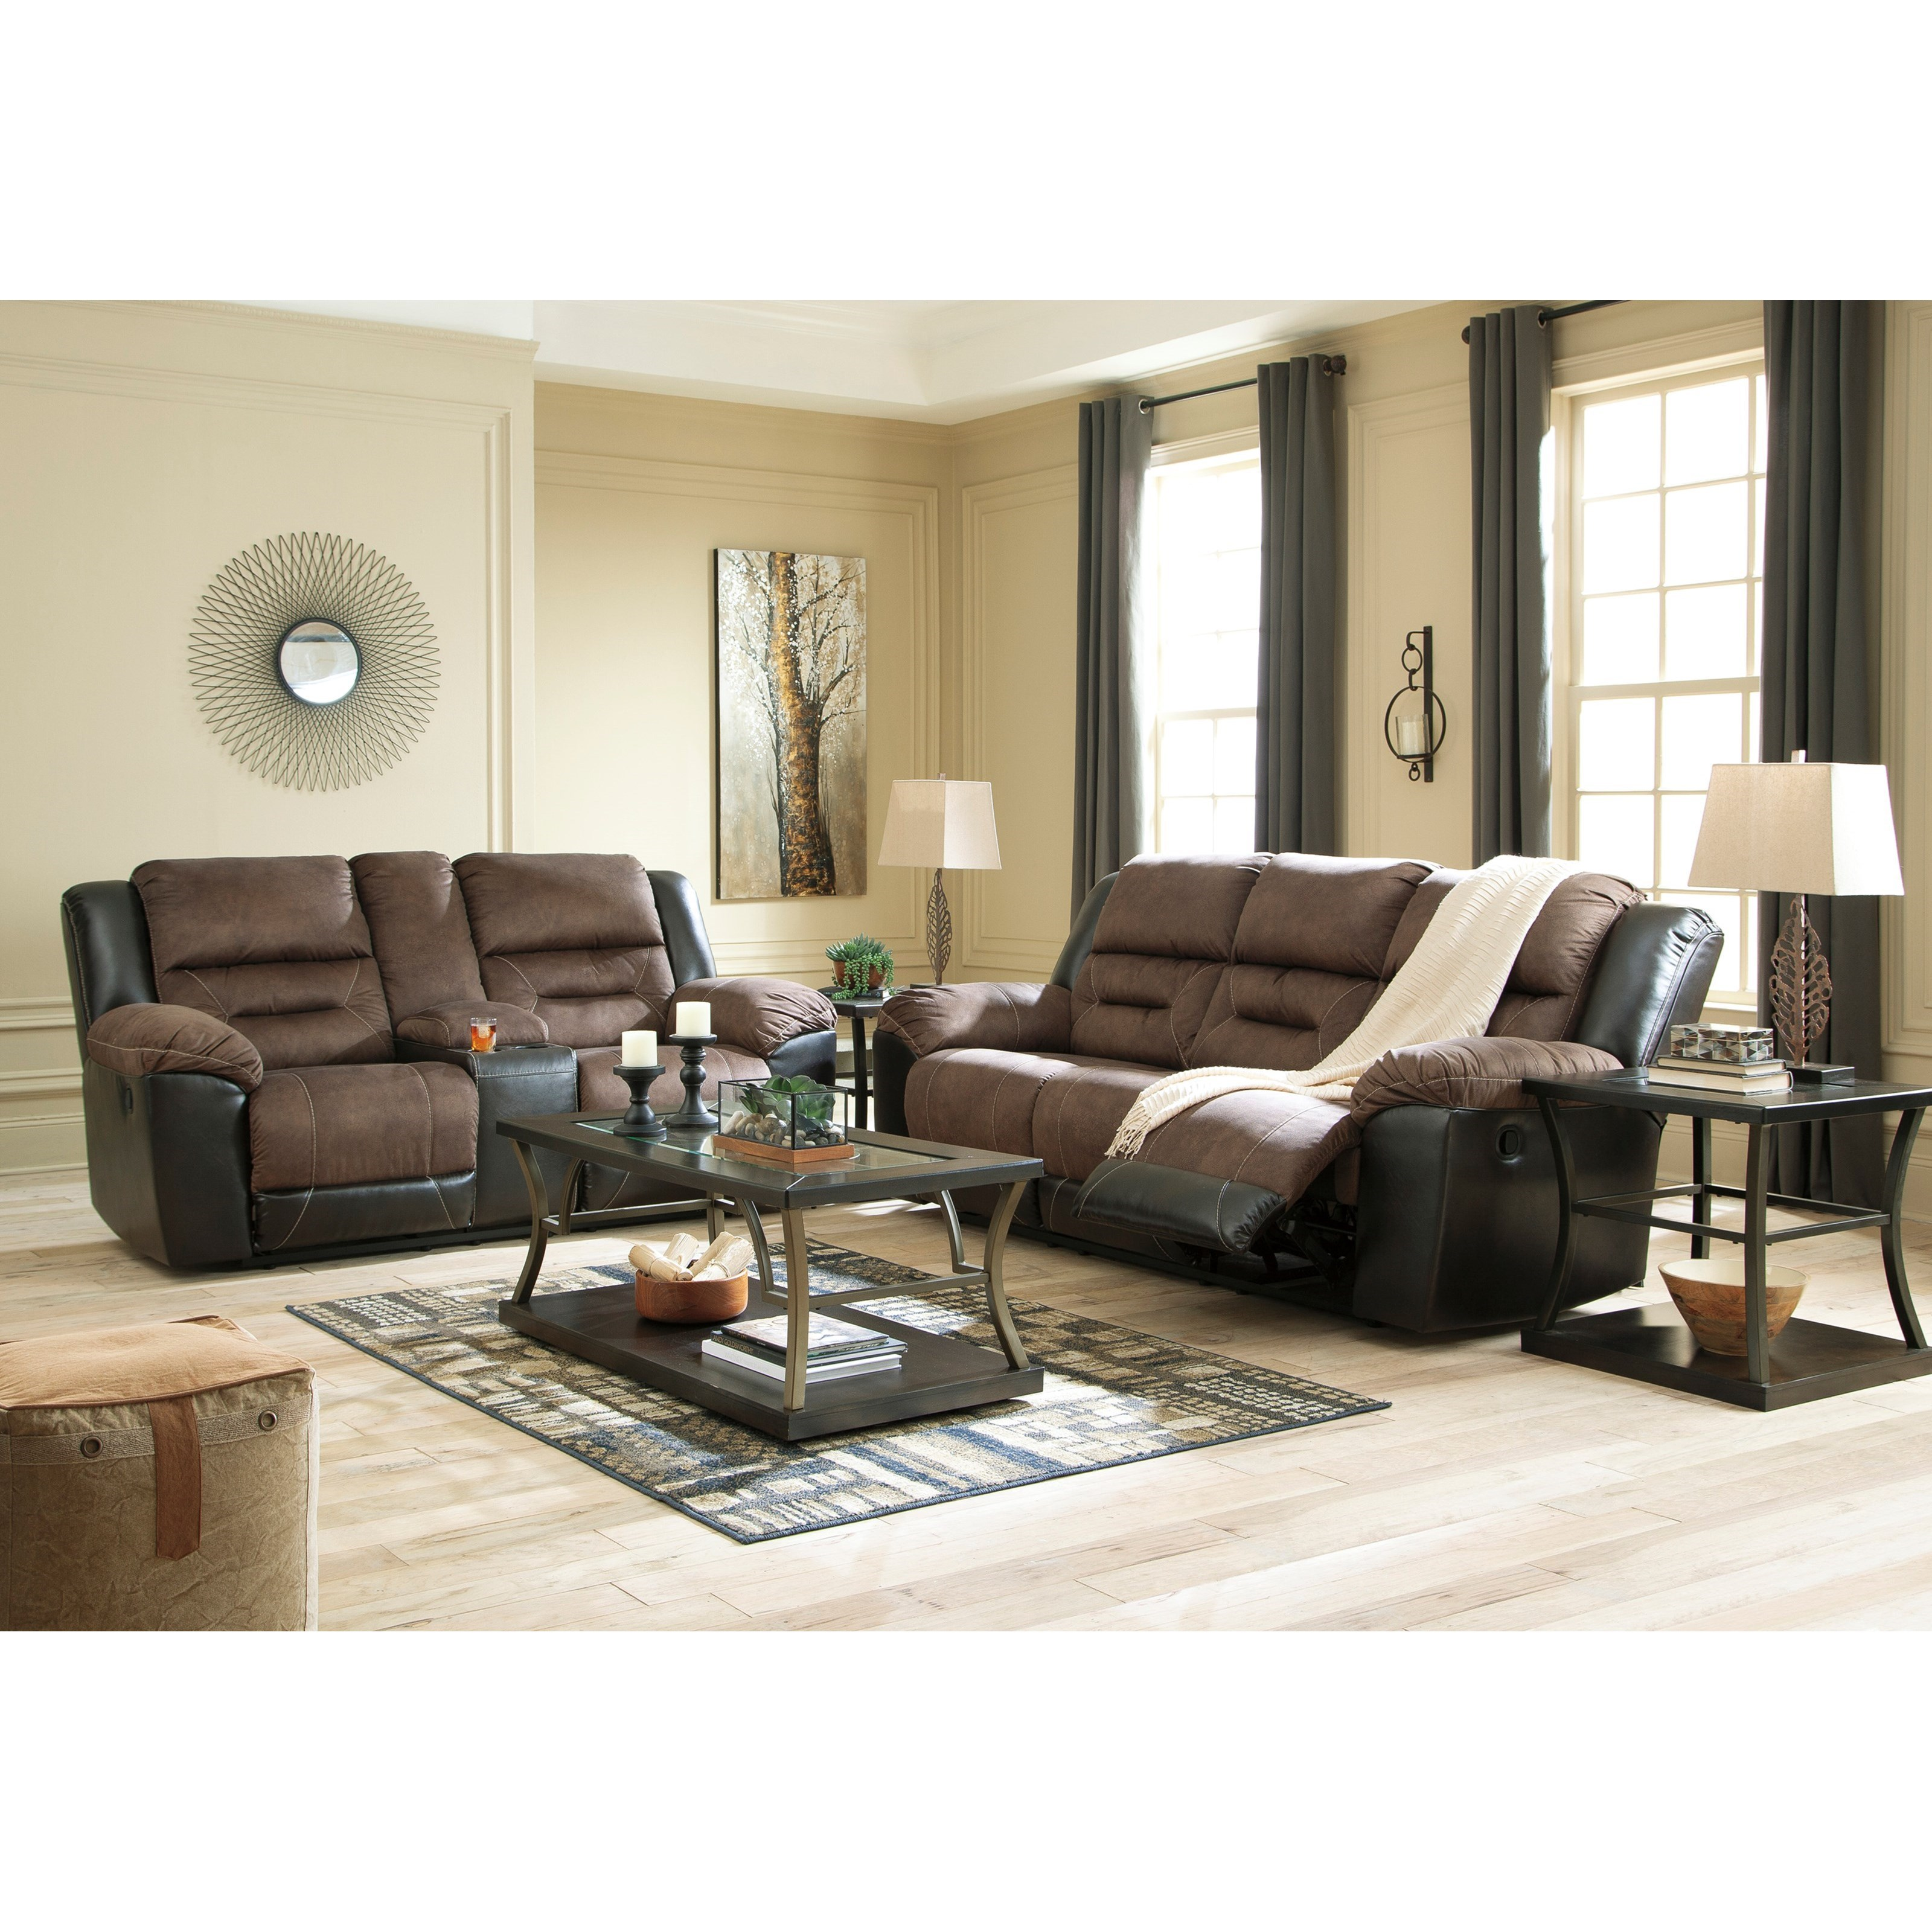 Signature Design By Ashley Earhart Reclining Living Room Group Rooms For Less Reclining Living Room Groups